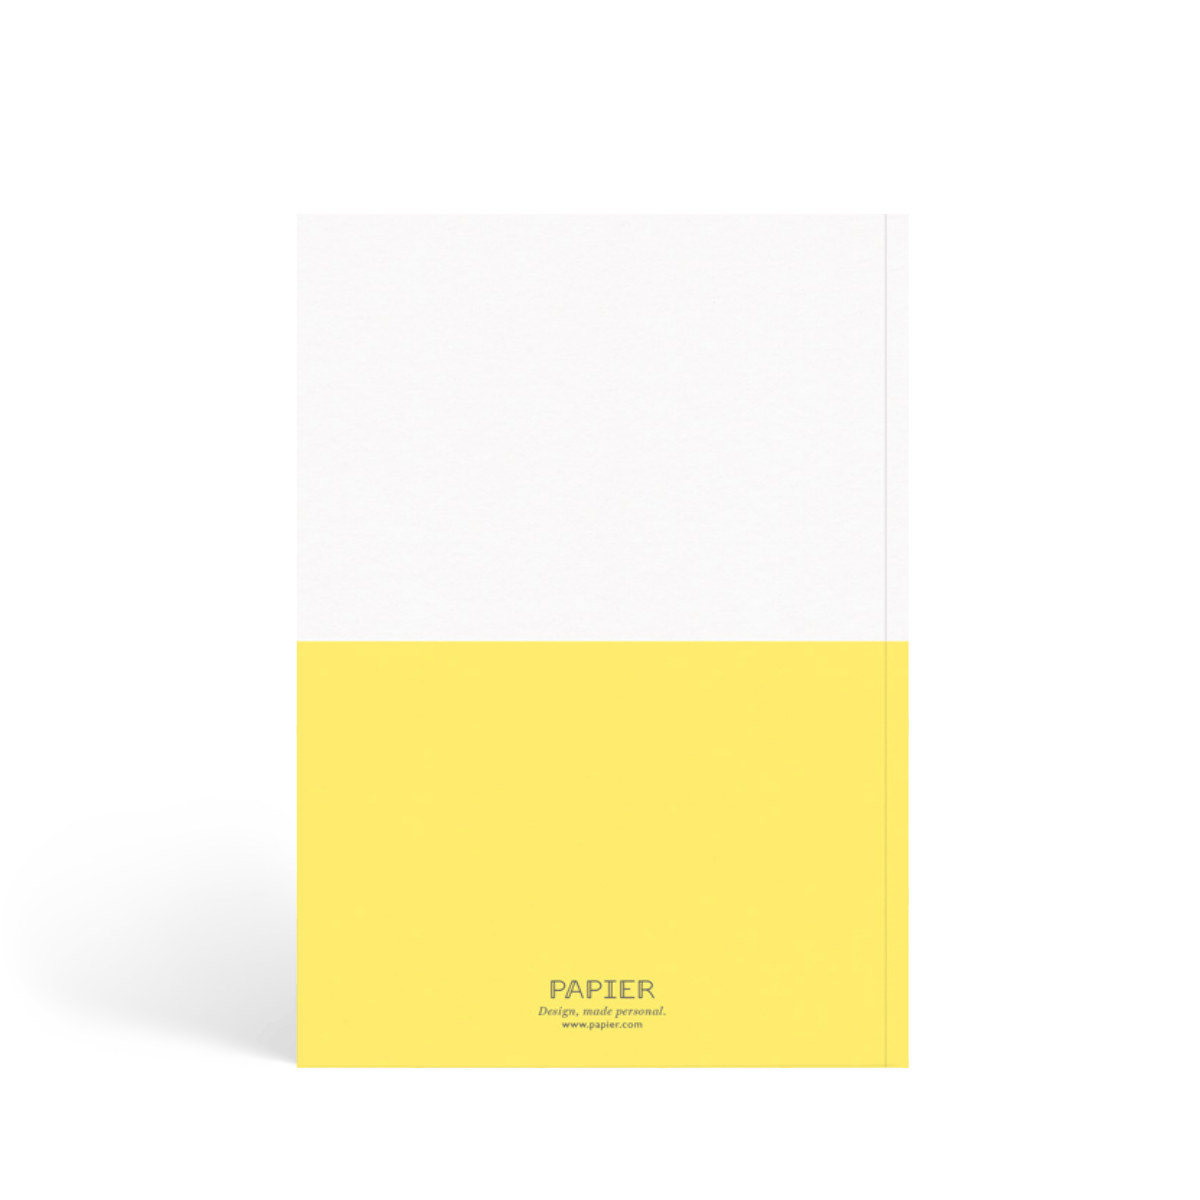 Https%3a%2f%2fwww.papier.com%2fproduct image%2f36949%2f5%2fdemi yellow 9296 back 1525252707.png?ixlib=rb 1.1